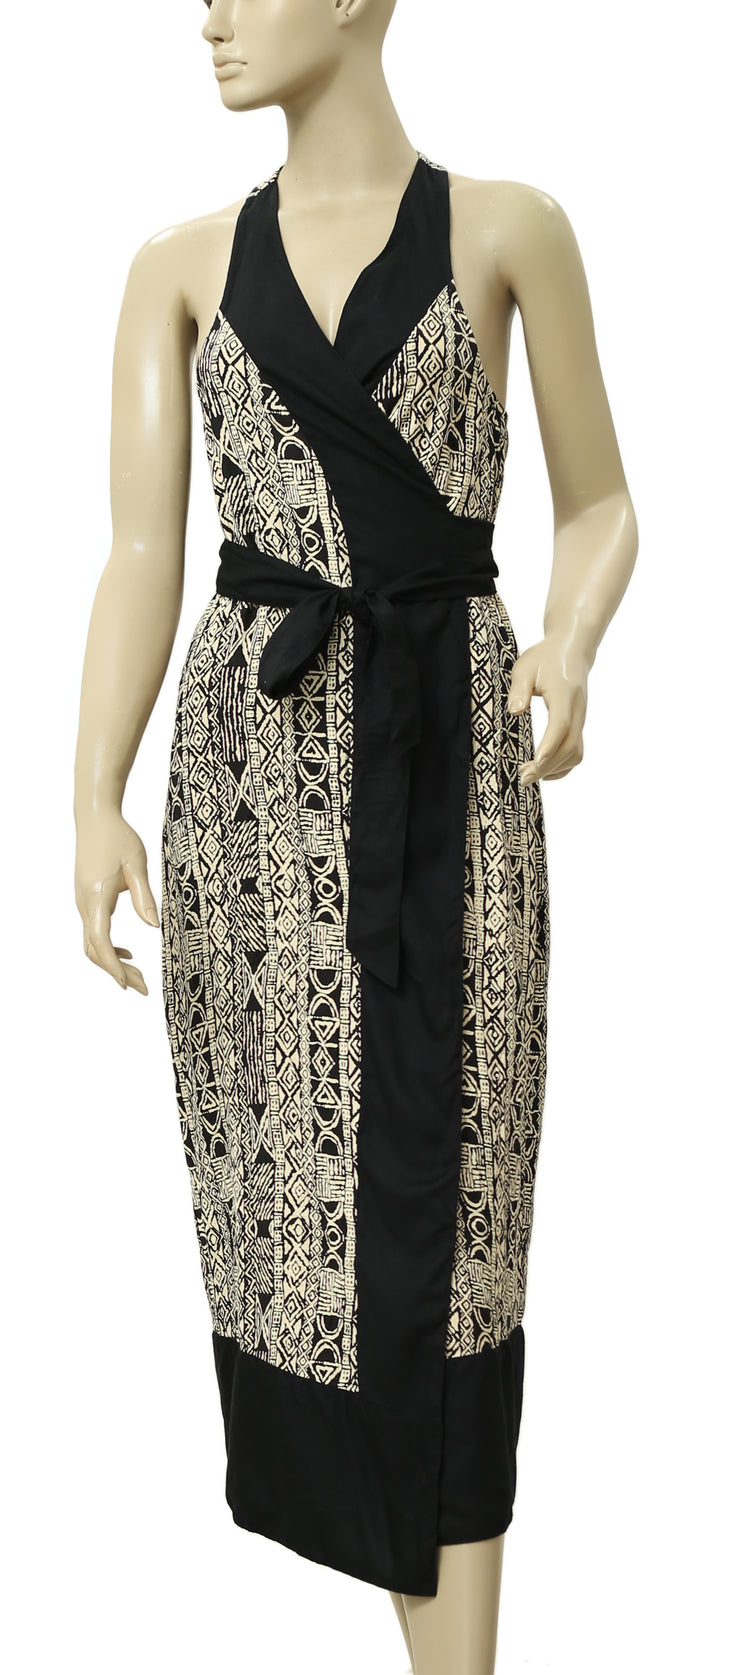 Free People Printed Robe Wrap Racer Back Midi Dress XS